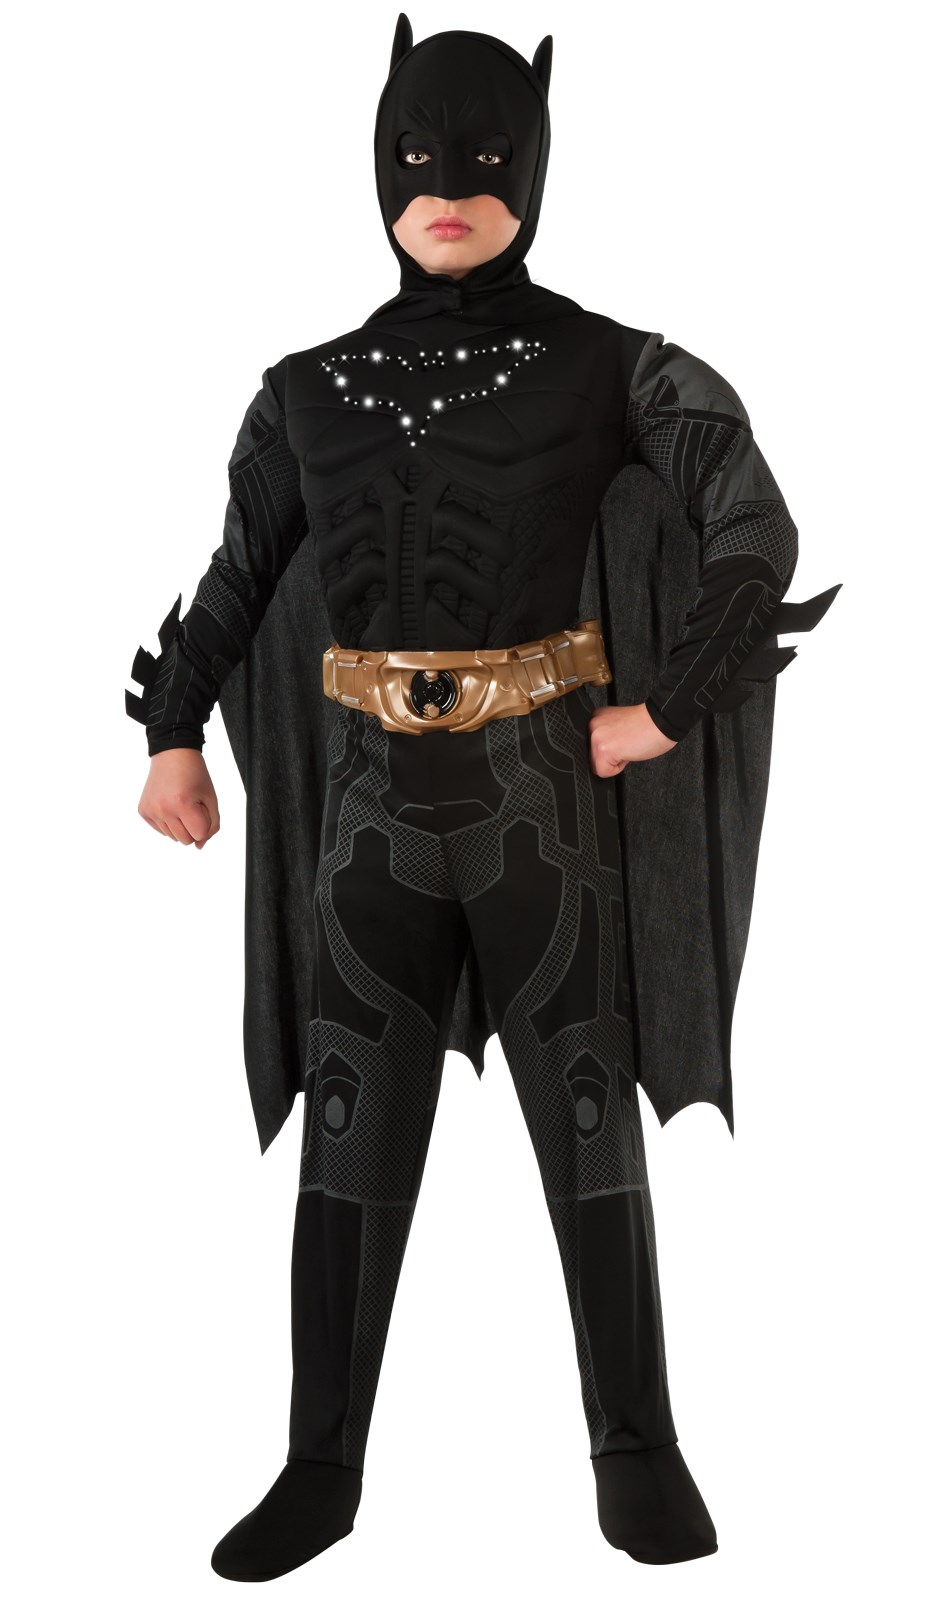 The Dark Knight Rises Batman Light-Up Kids Costume Small (4-6)